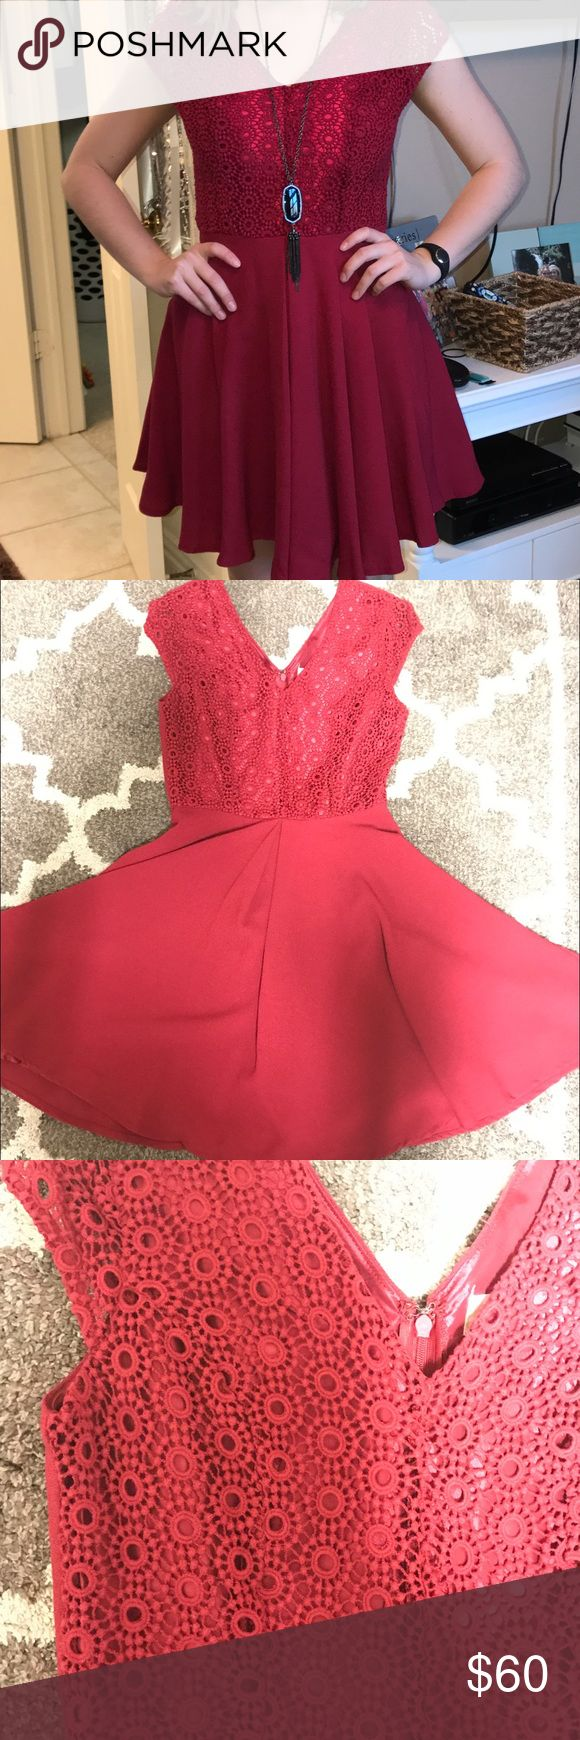 Red formal dress from Altar'd State. Worn once to a sorority recruitment! Super flattering on. Altar'd State Dresses Mini